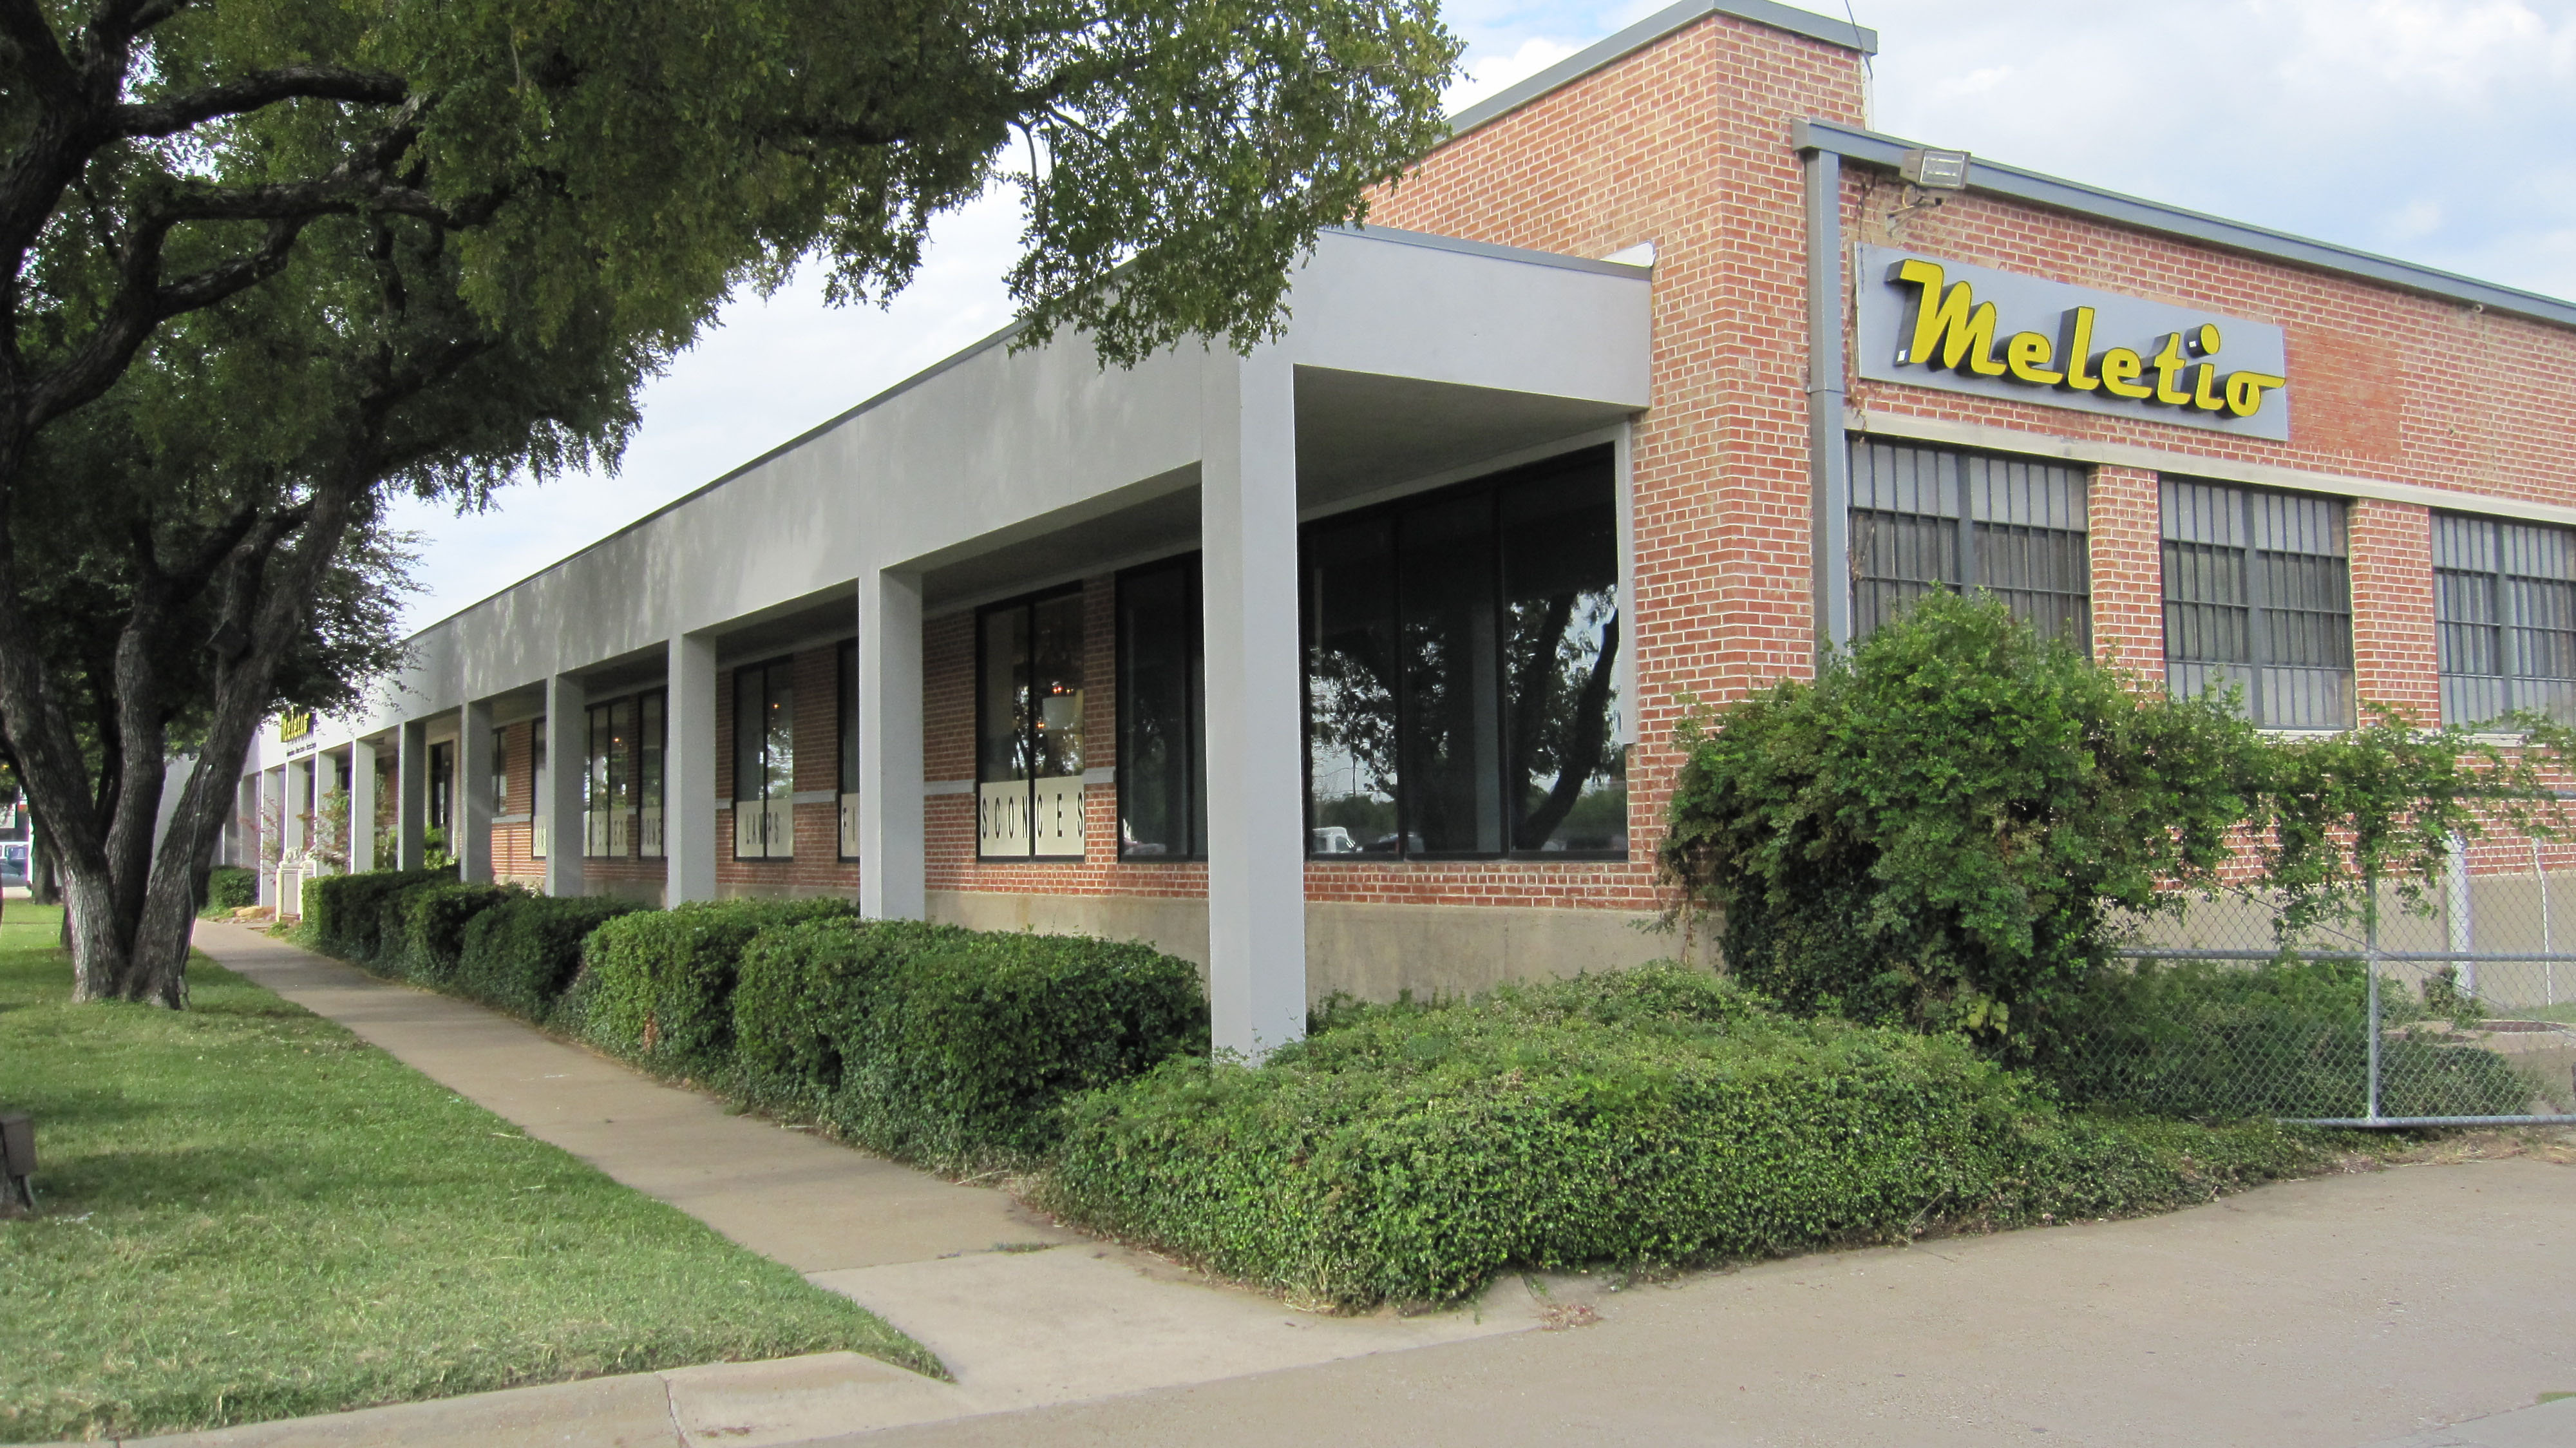 Meletio's - Dallas, Texas - GenFlex TPO Roofing / Wall Coping / Gutters & Downspouts